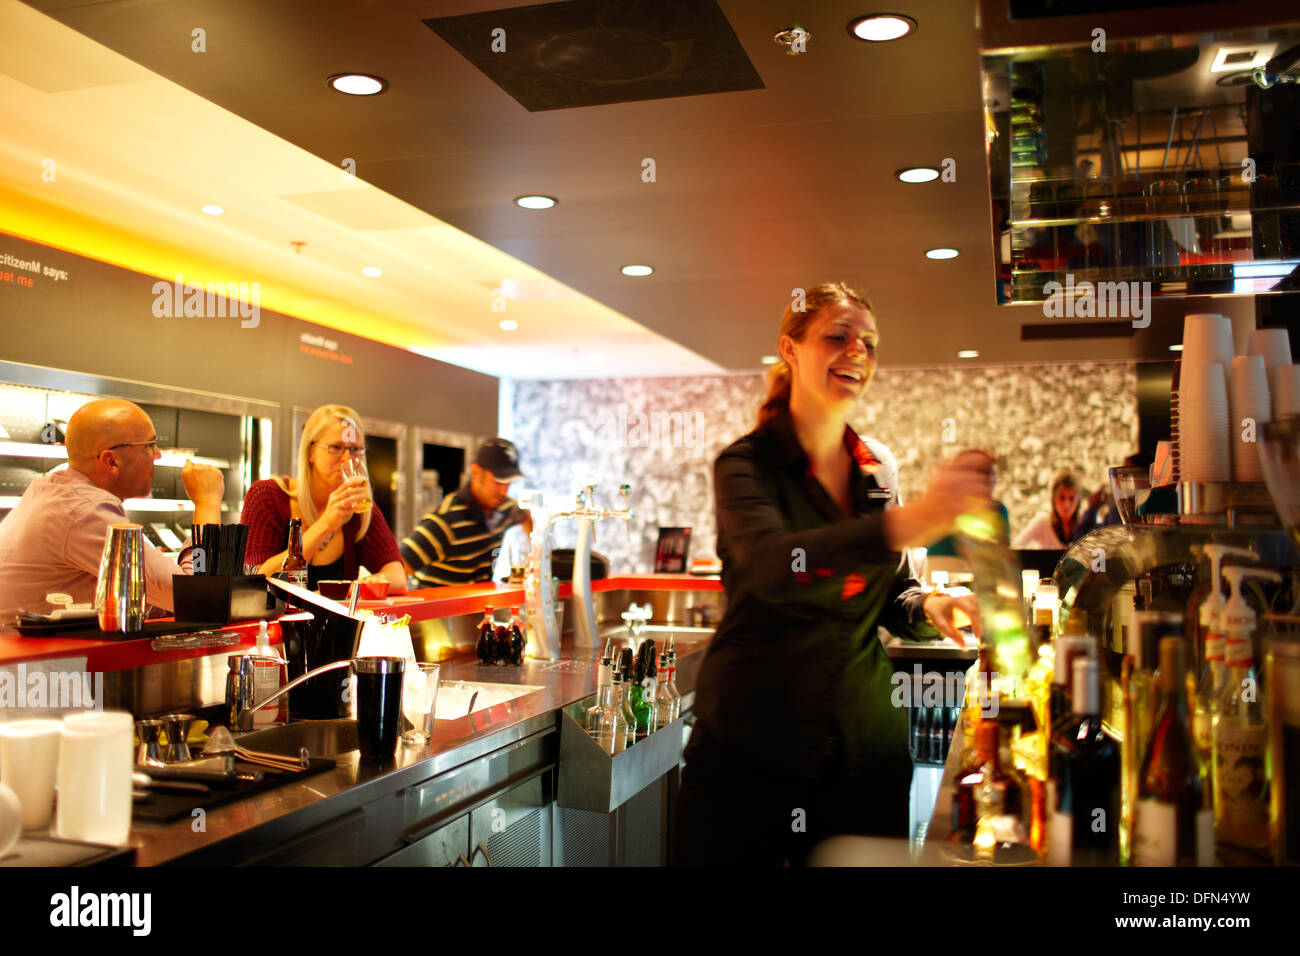 Guests at the bar, canteenM, Citizen M Hotel, Amsterdam, Netherlands - Stock Image